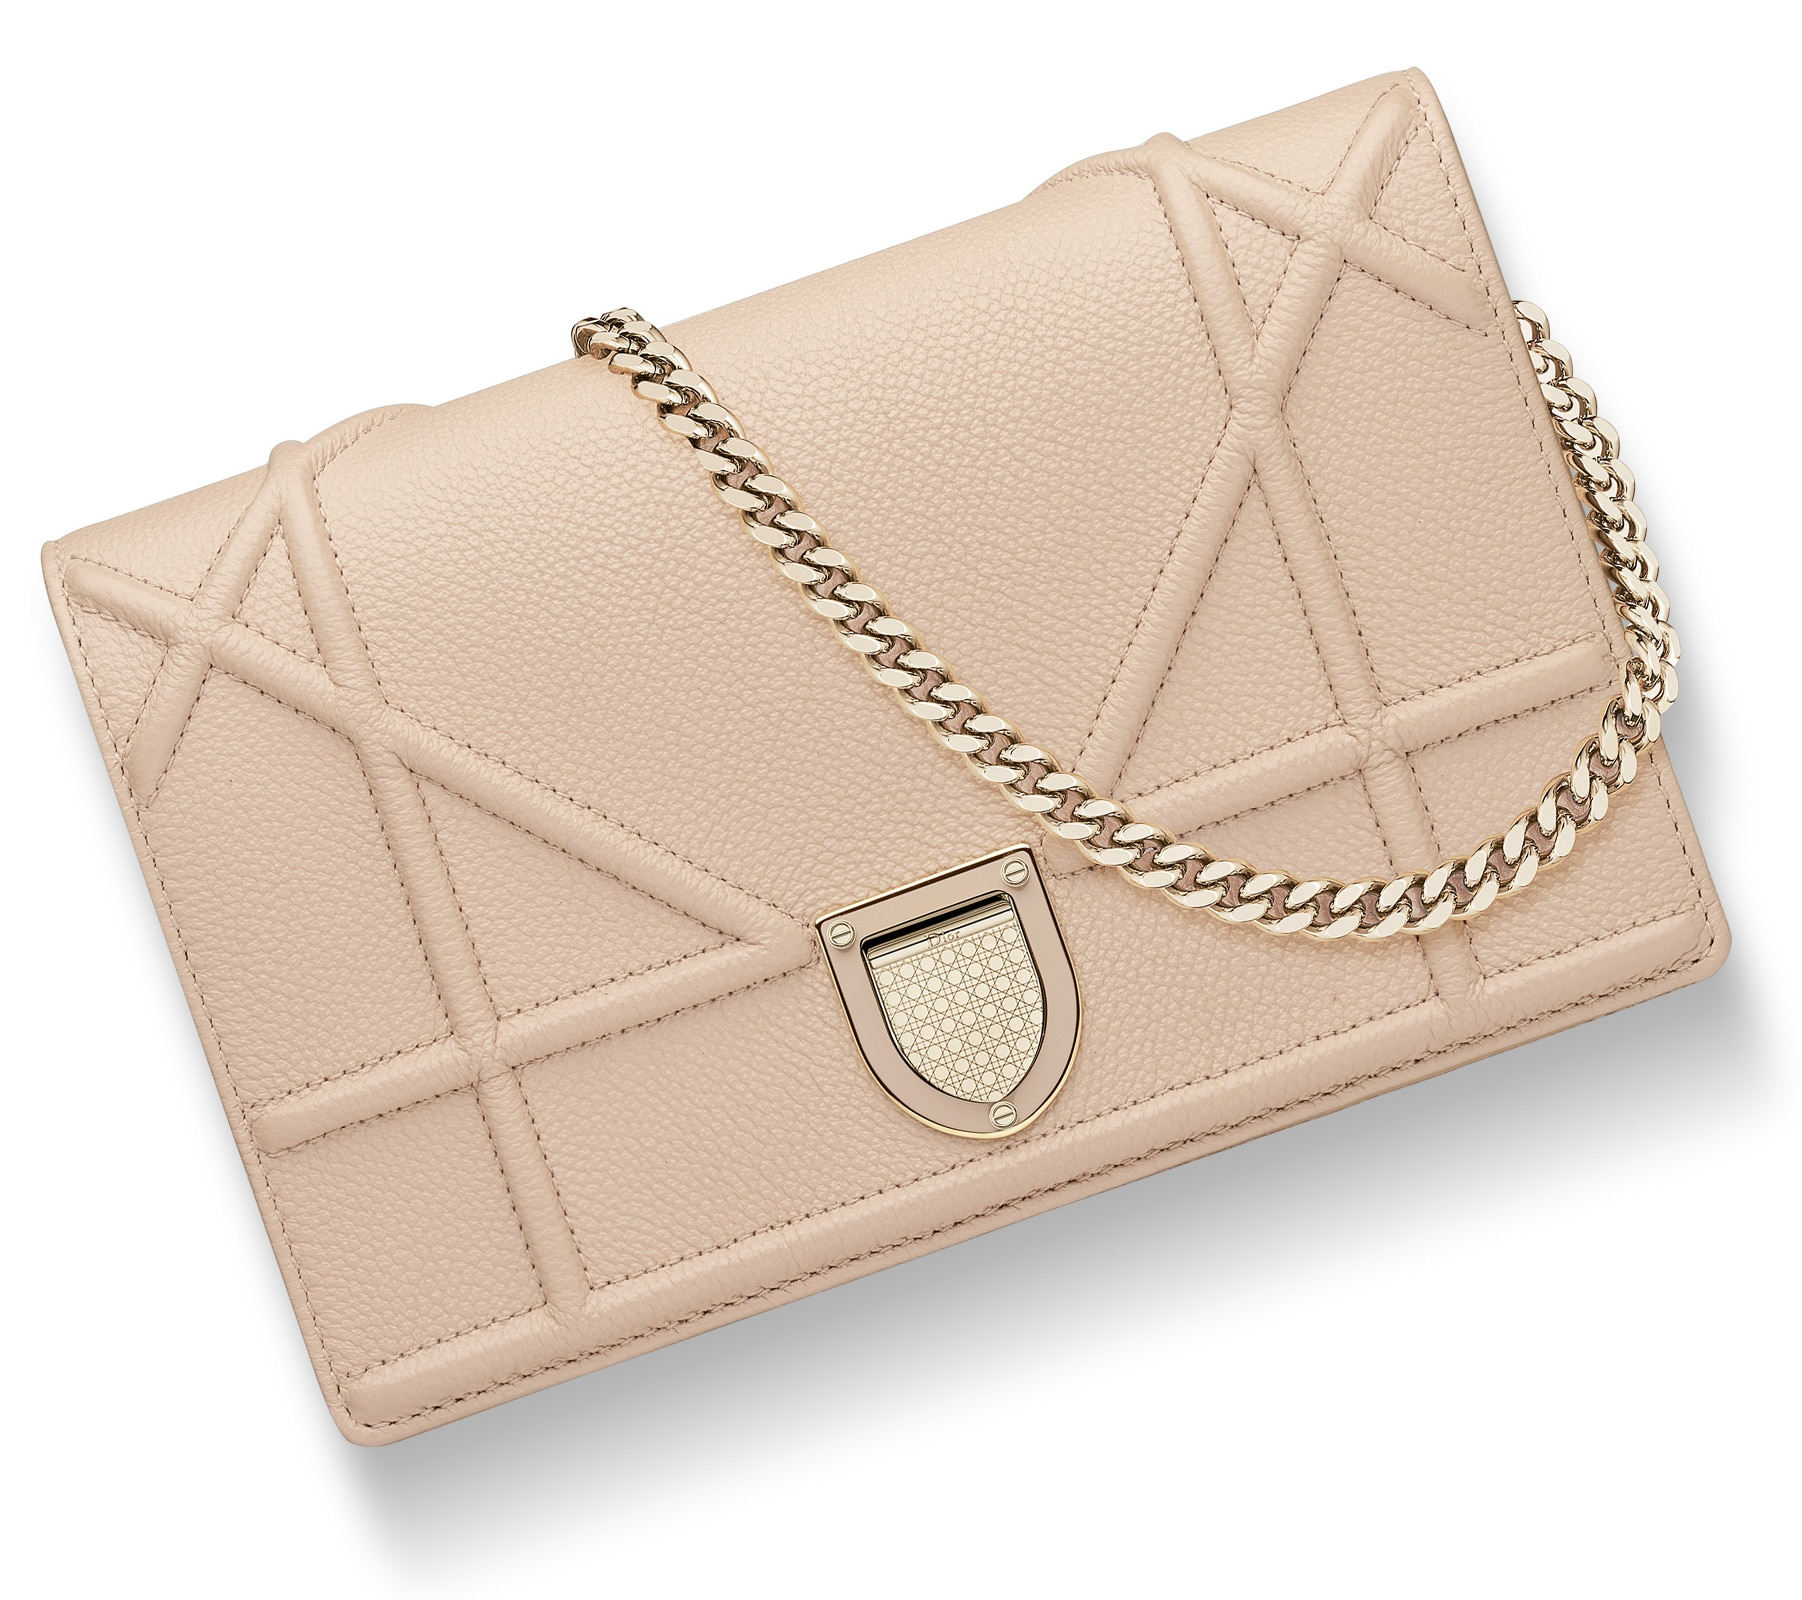 0093c690b212 Dior Nude Diorama Wallet On Chain Pouch Bag